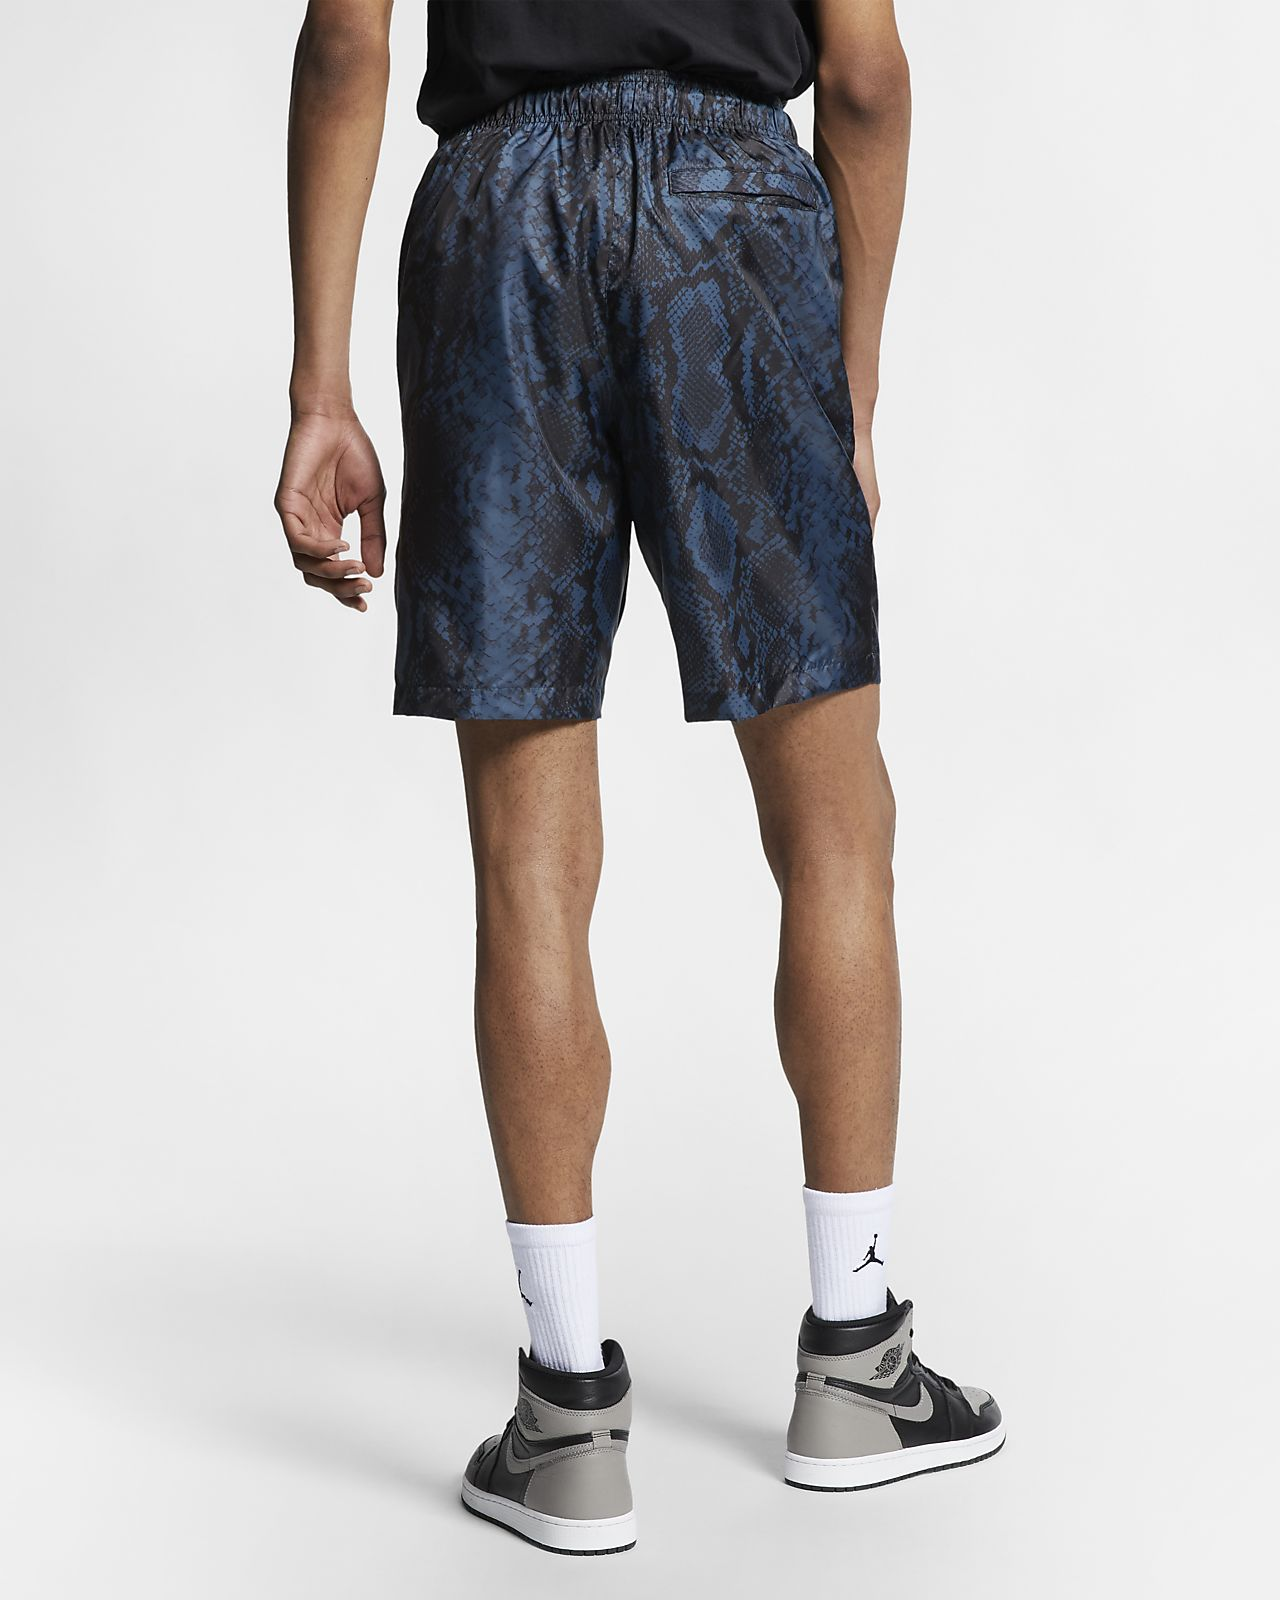 7df1c353e91 Low Resolution Jordan AJ11 Snakeskin Men's Shorts Jordan AJ11 Snakeskin  Men's Shorts